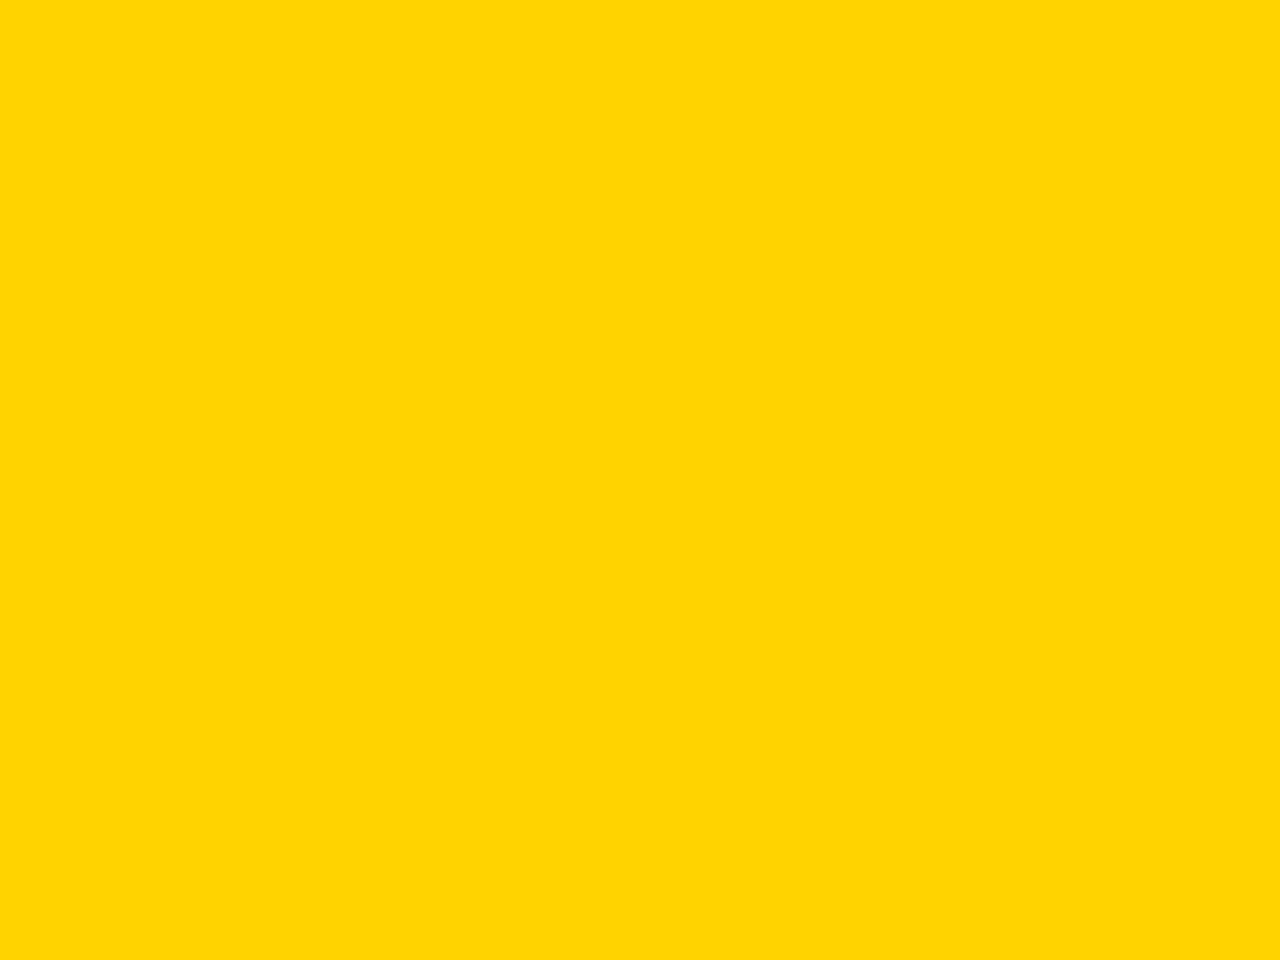 1280x960 Yellow NCS Solid Color Background